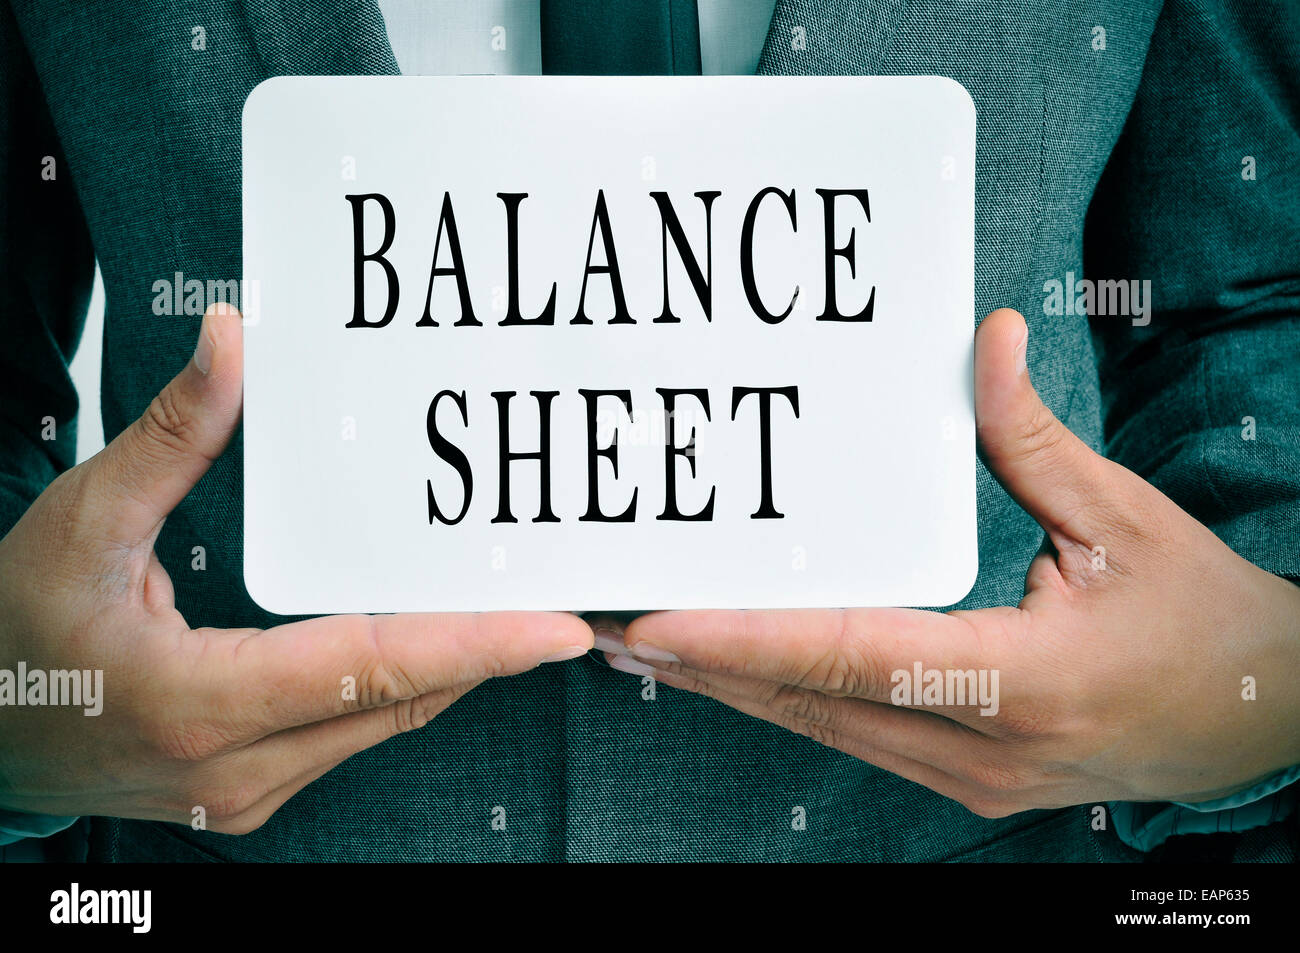 a businessman showing a signboard with the text balance sheet written in it Stock Photo